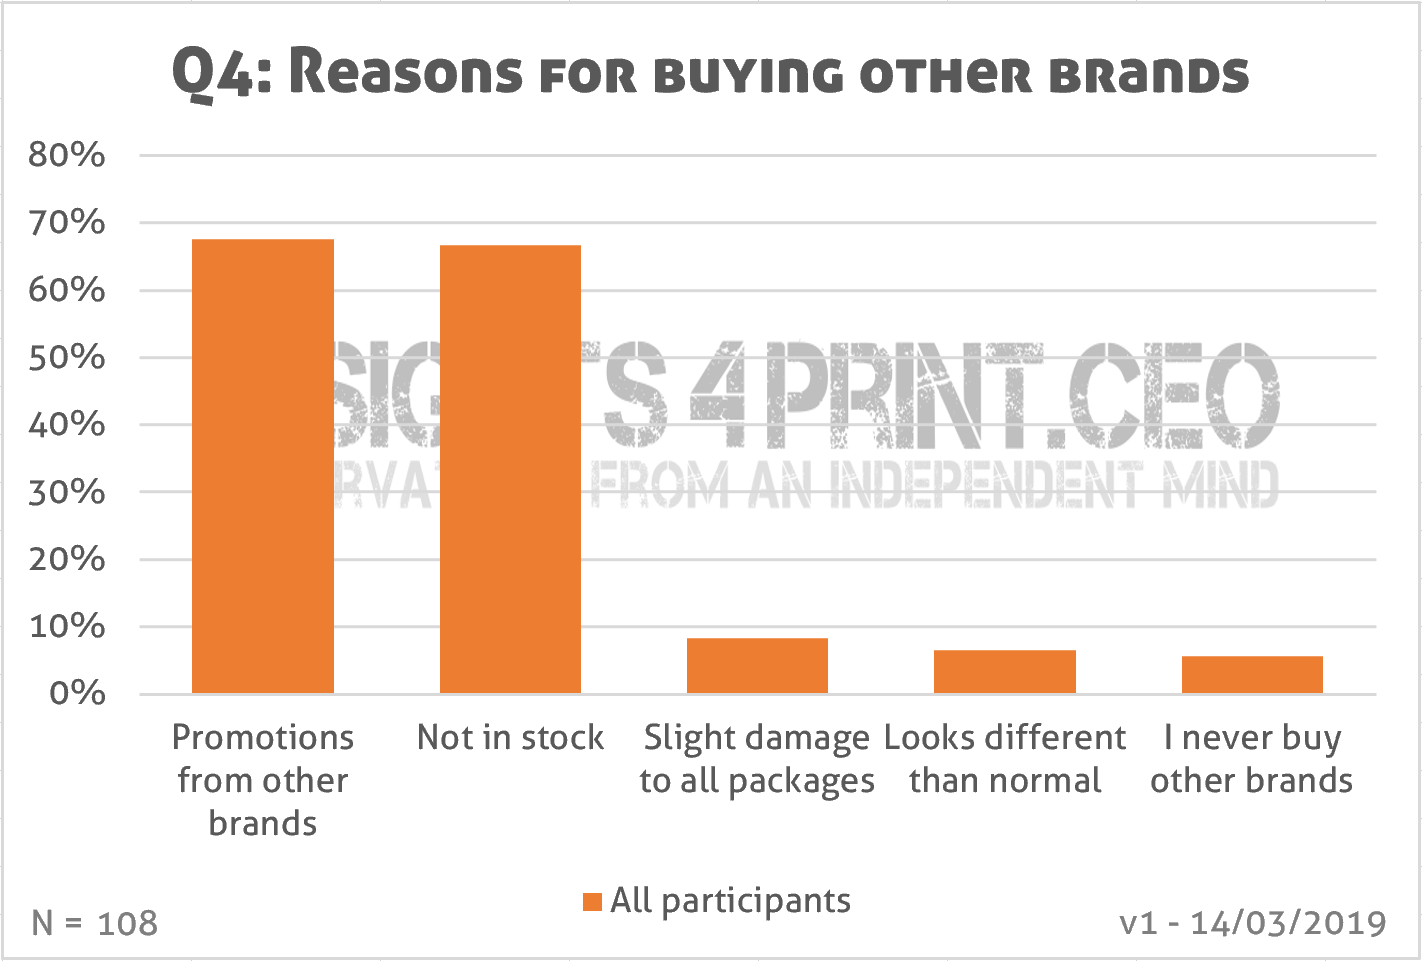 Reasons for buying another brand